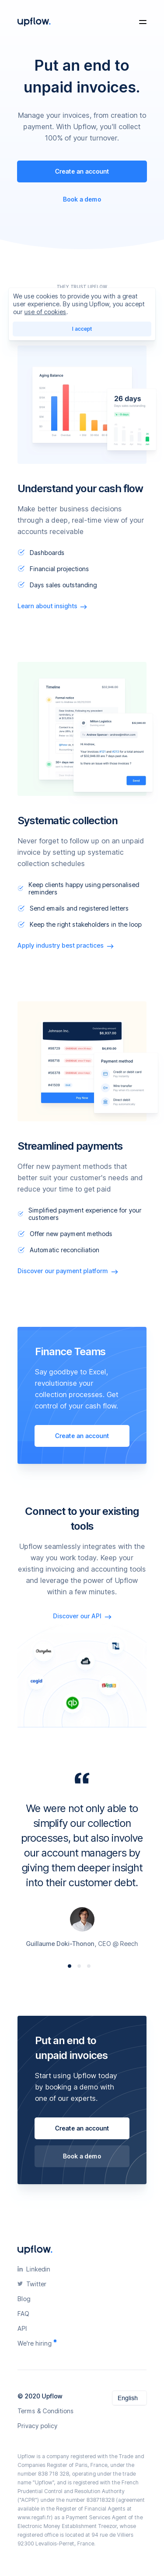 Example of Design for Finance, Accounting & Auditing, Mobile Landing Page by upflow.io   Mobile Landing Page Design